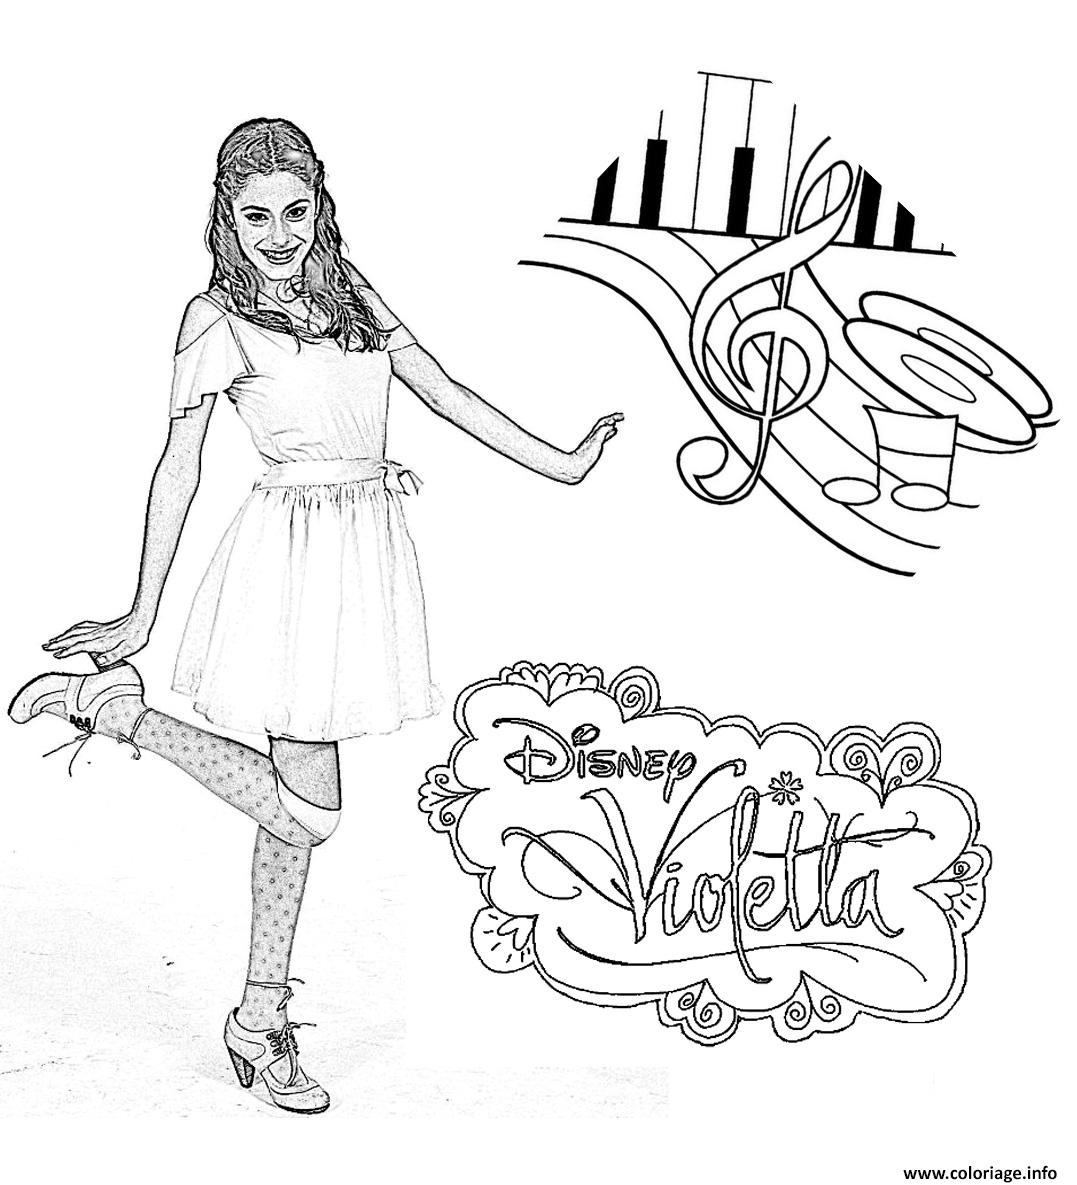 coloriage violetta danse notes dessin gratuit